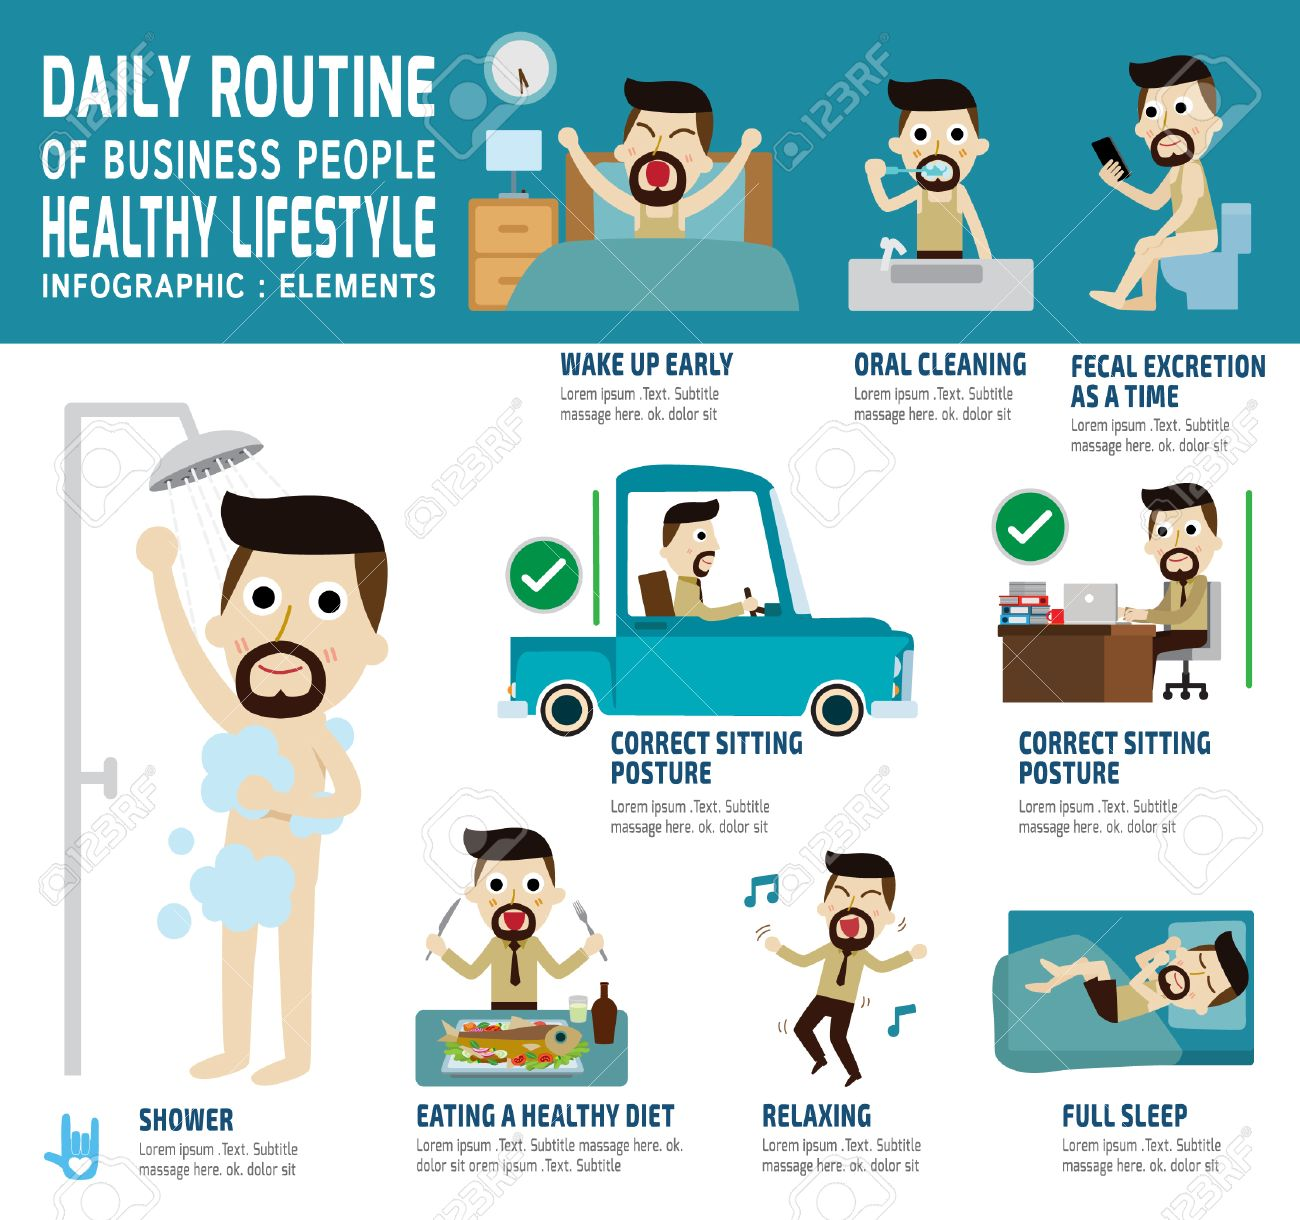 daily routine of happy business people infographic element health